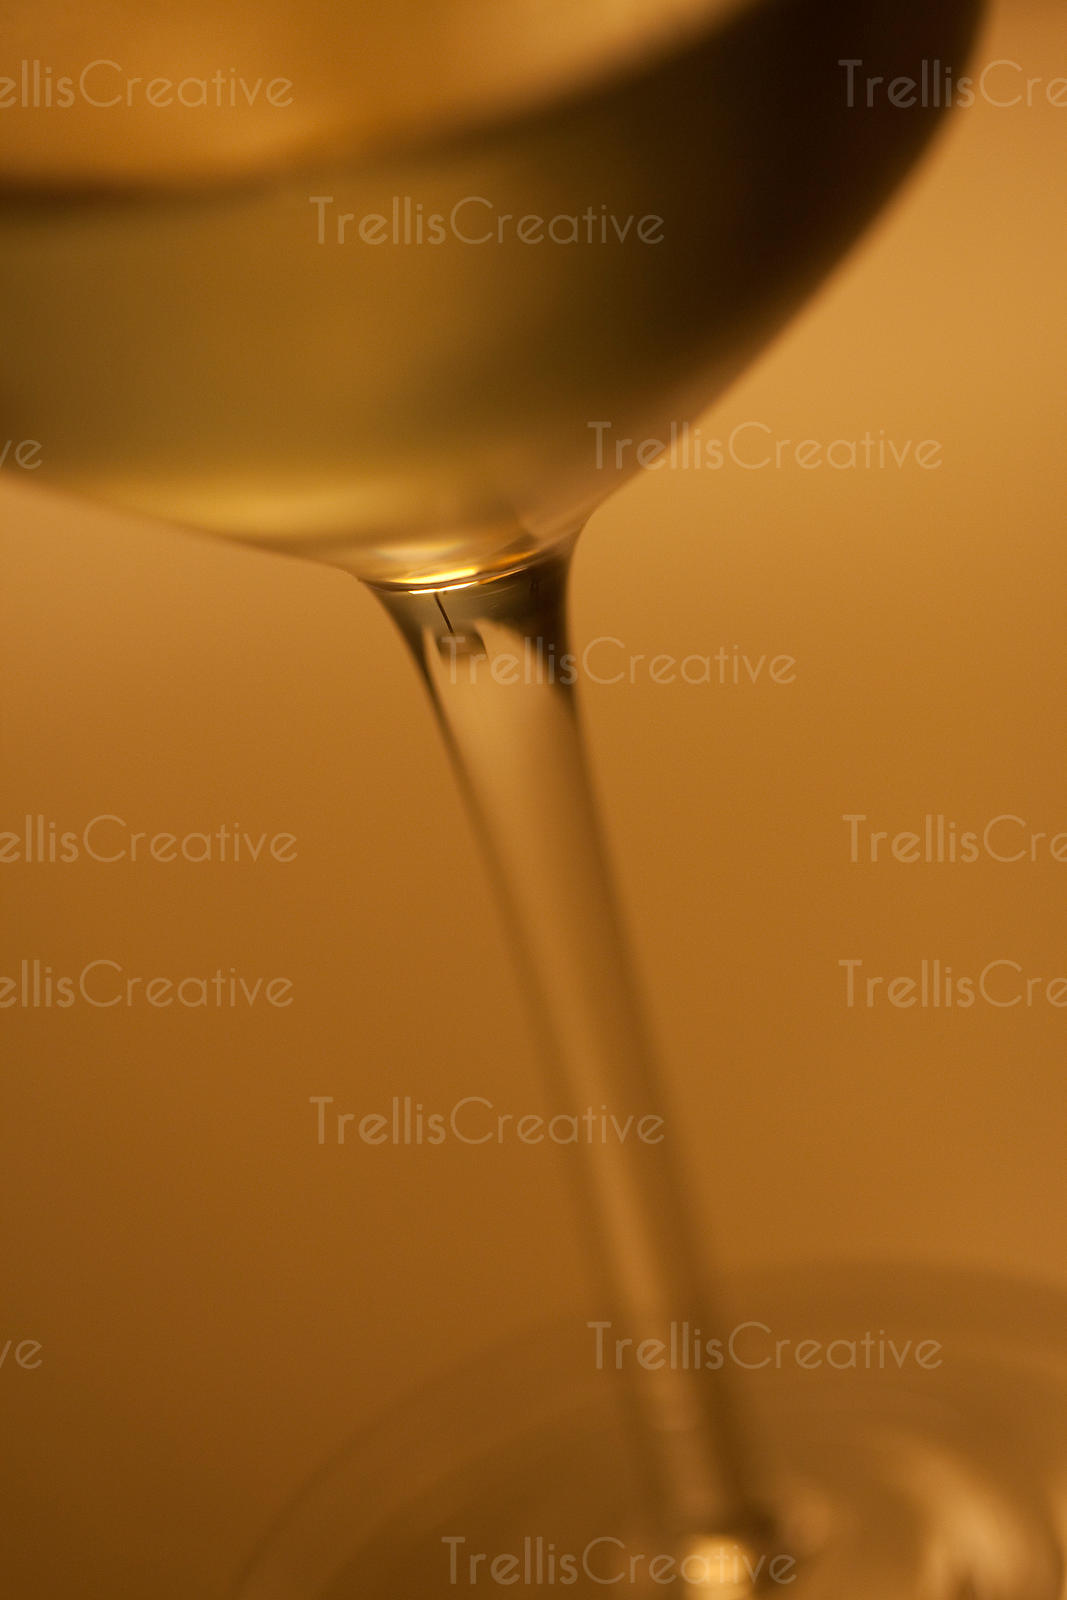 Macro photography of a glass of white wine